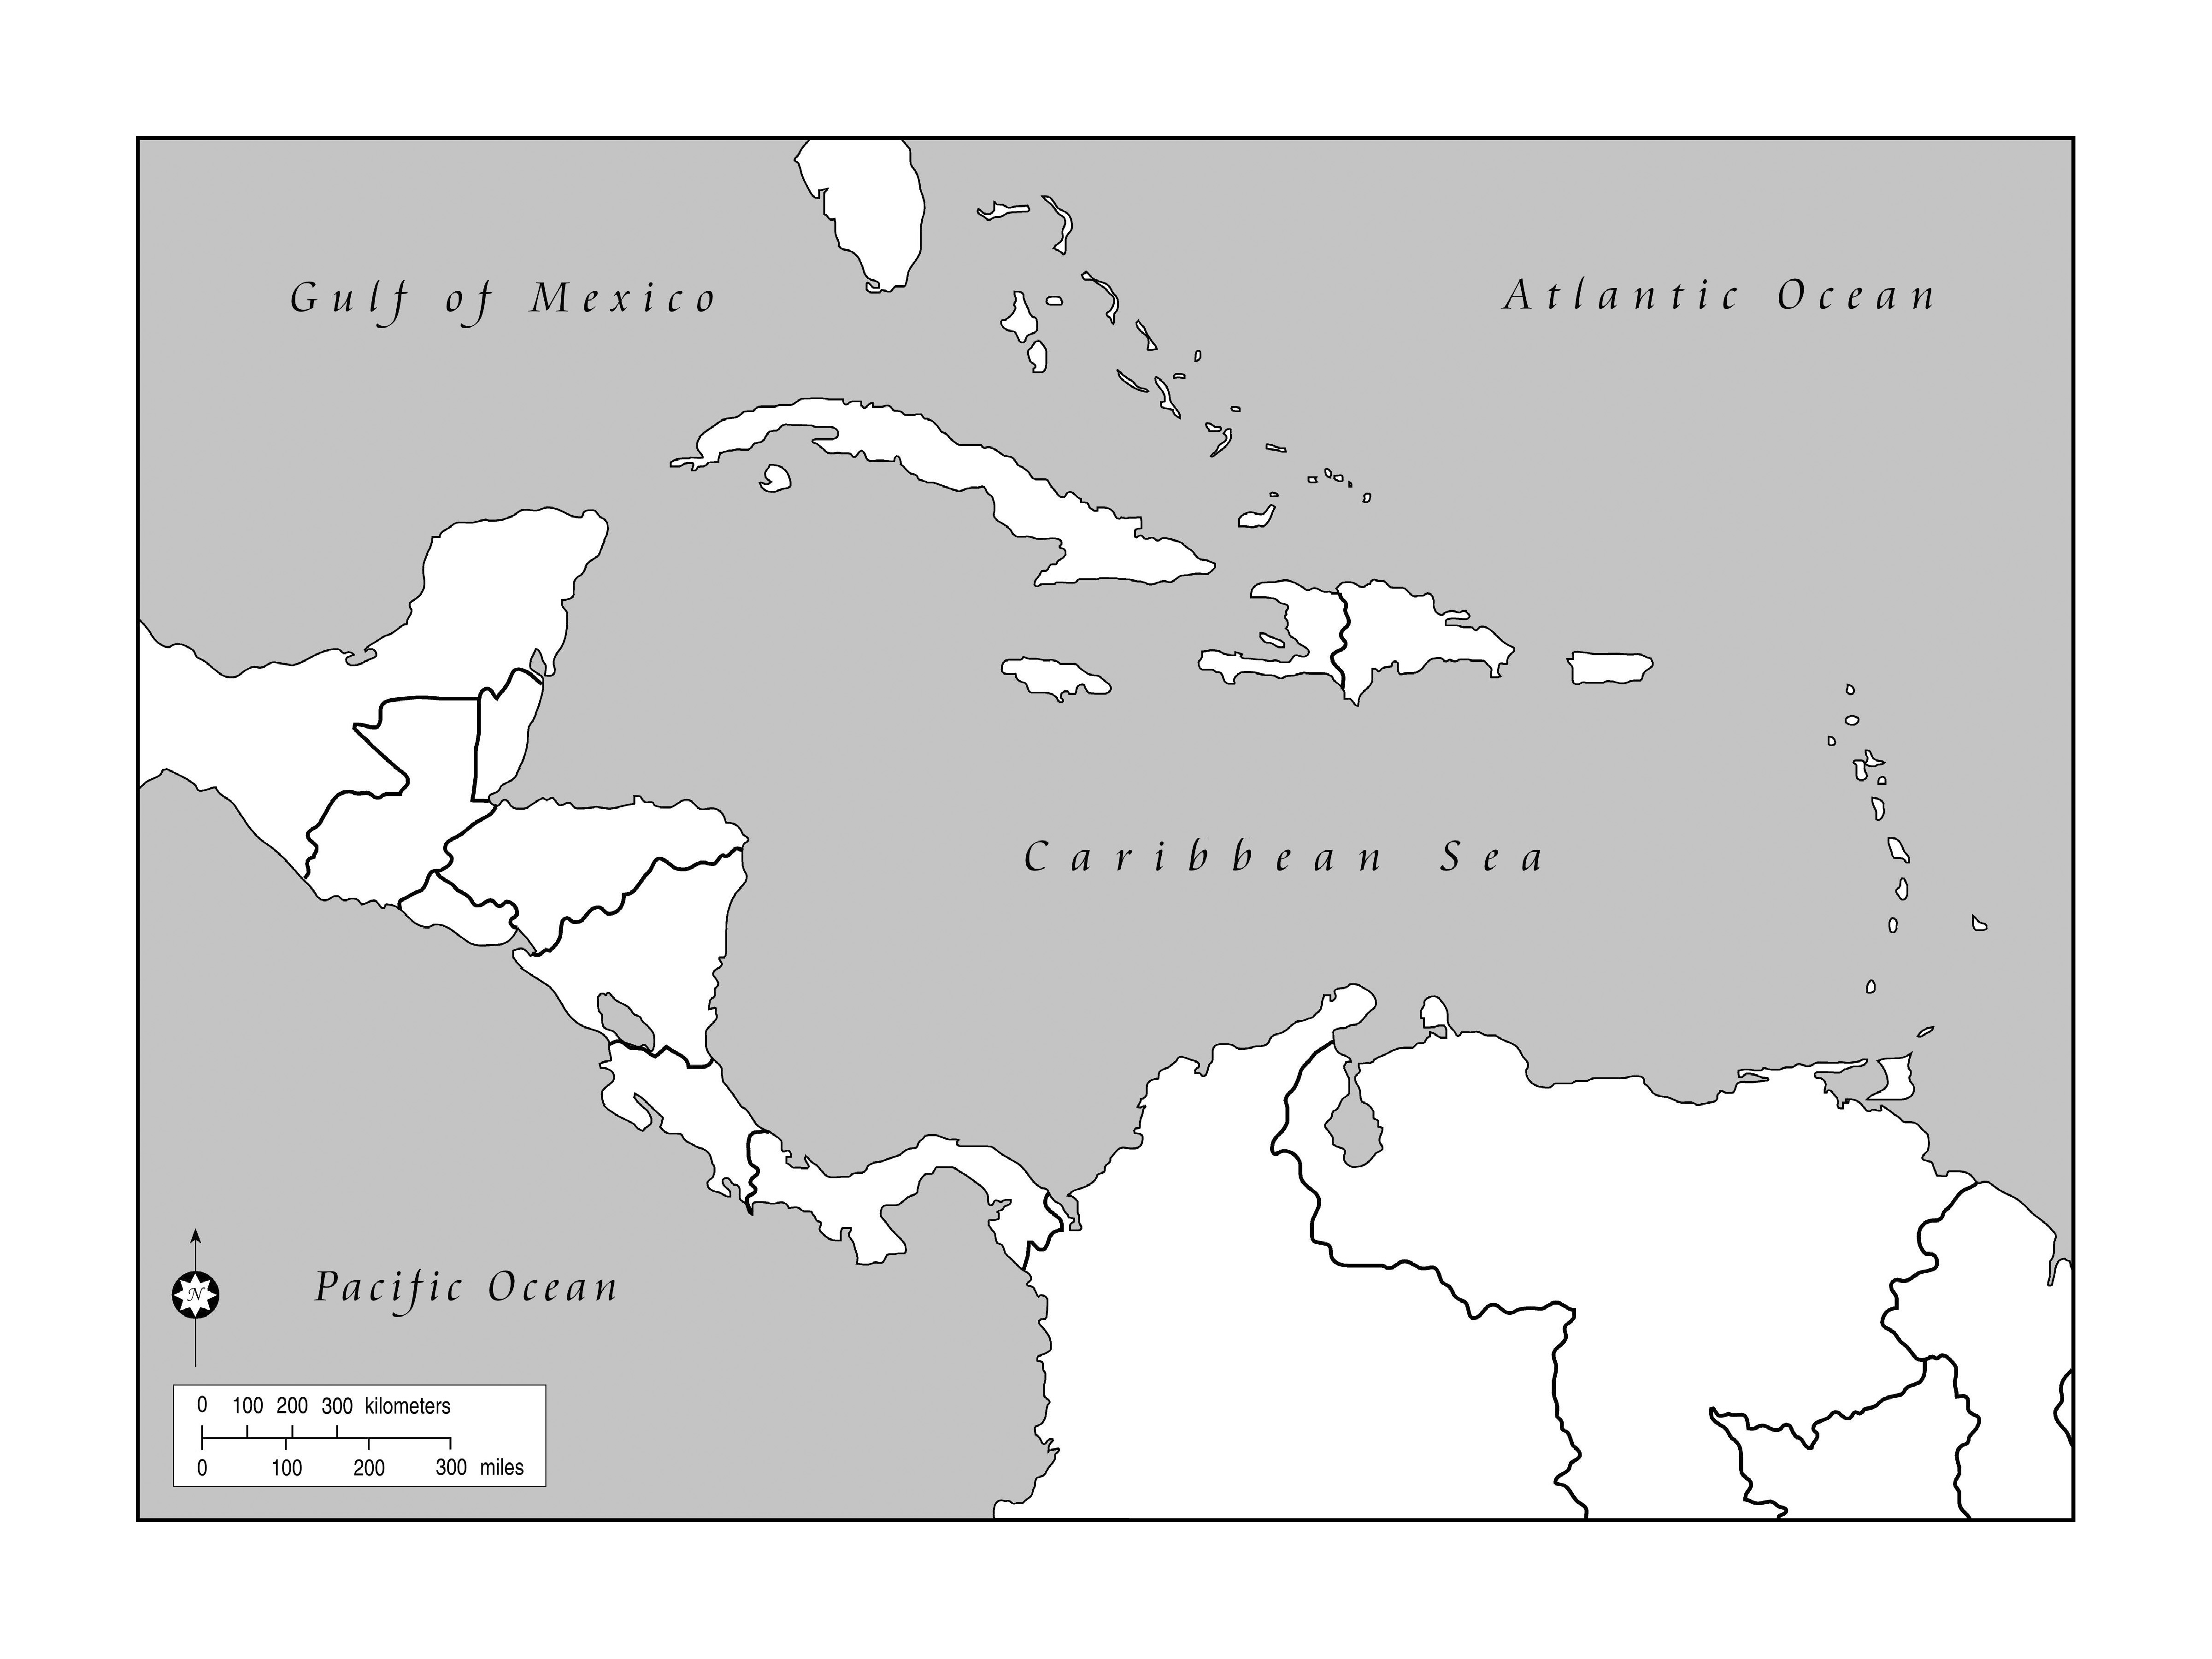 Outline Map Of Dominican Republic And Haiti With Outline Clipart.